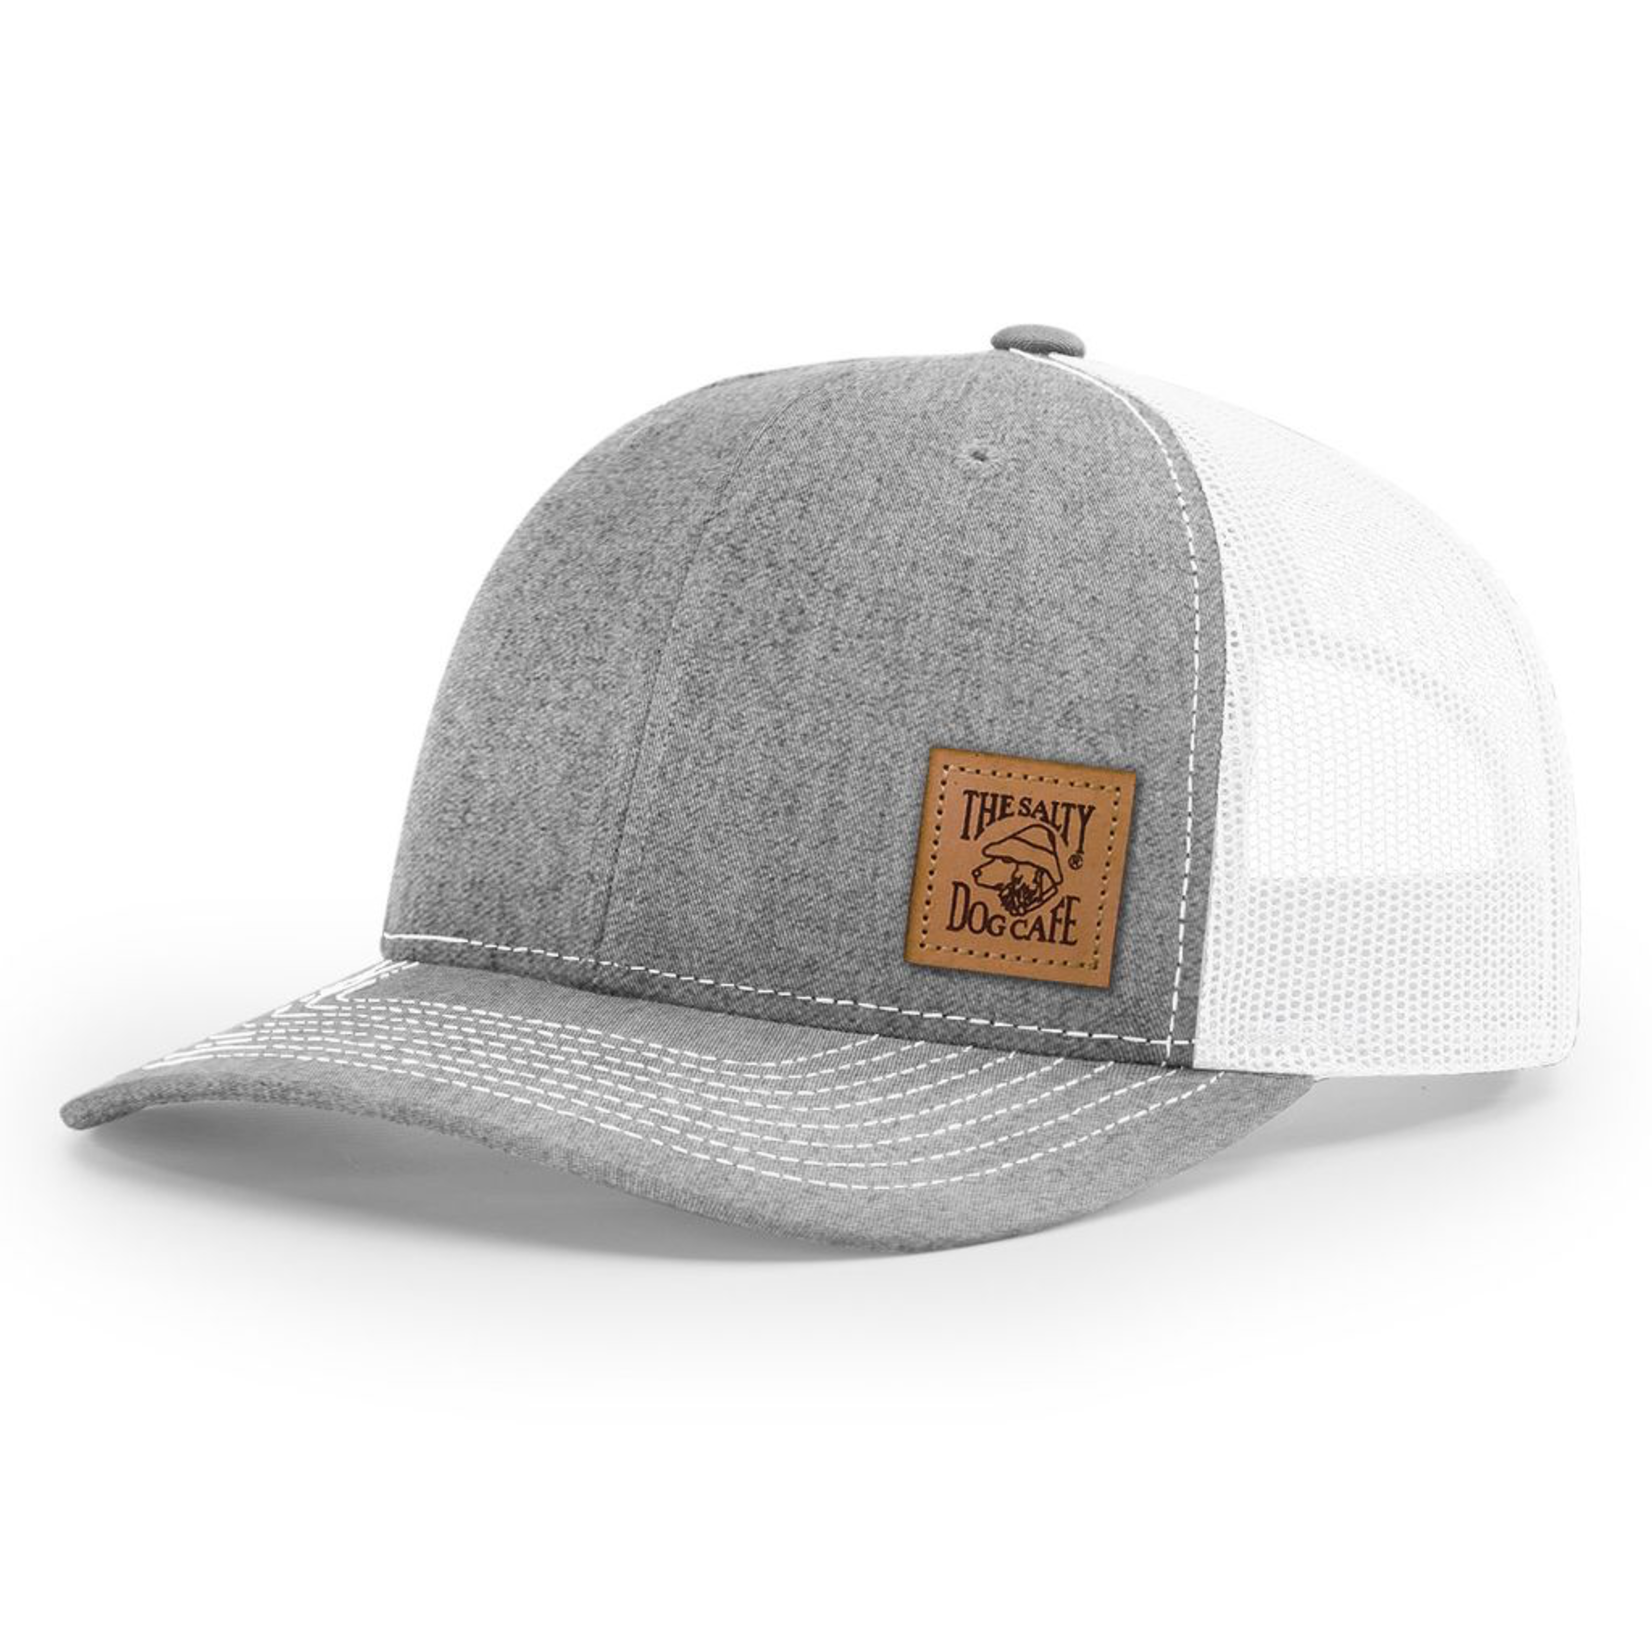 Trucker - Leather Patch, Heather Gray/White, Adult